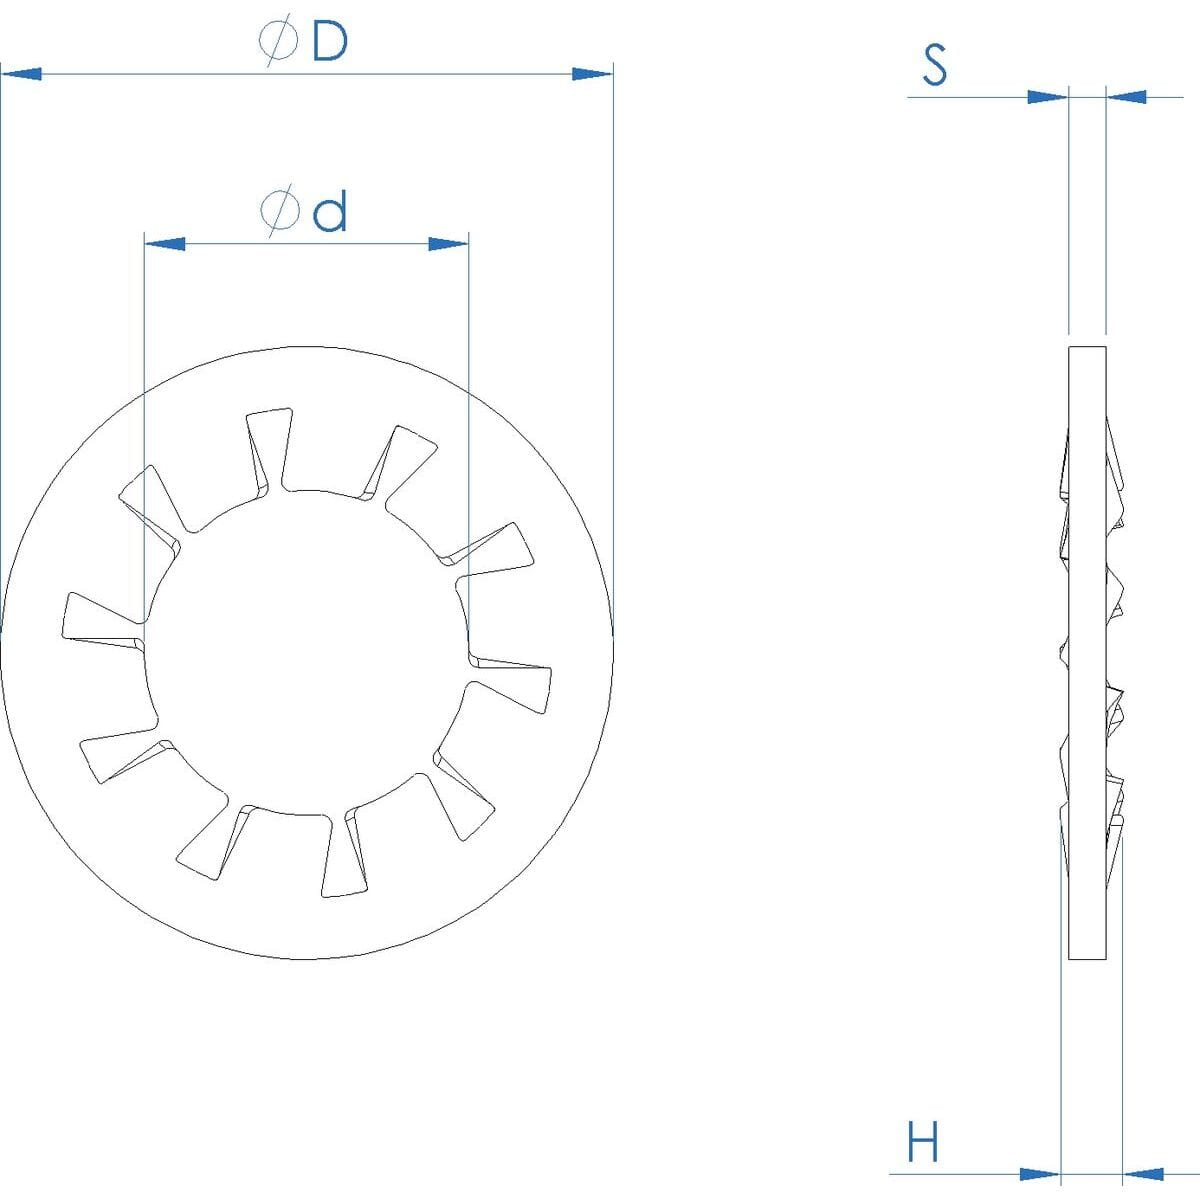 M6 Internal Locking Washers (DIN 6797J) - Stainless Steel (A2) Drawing